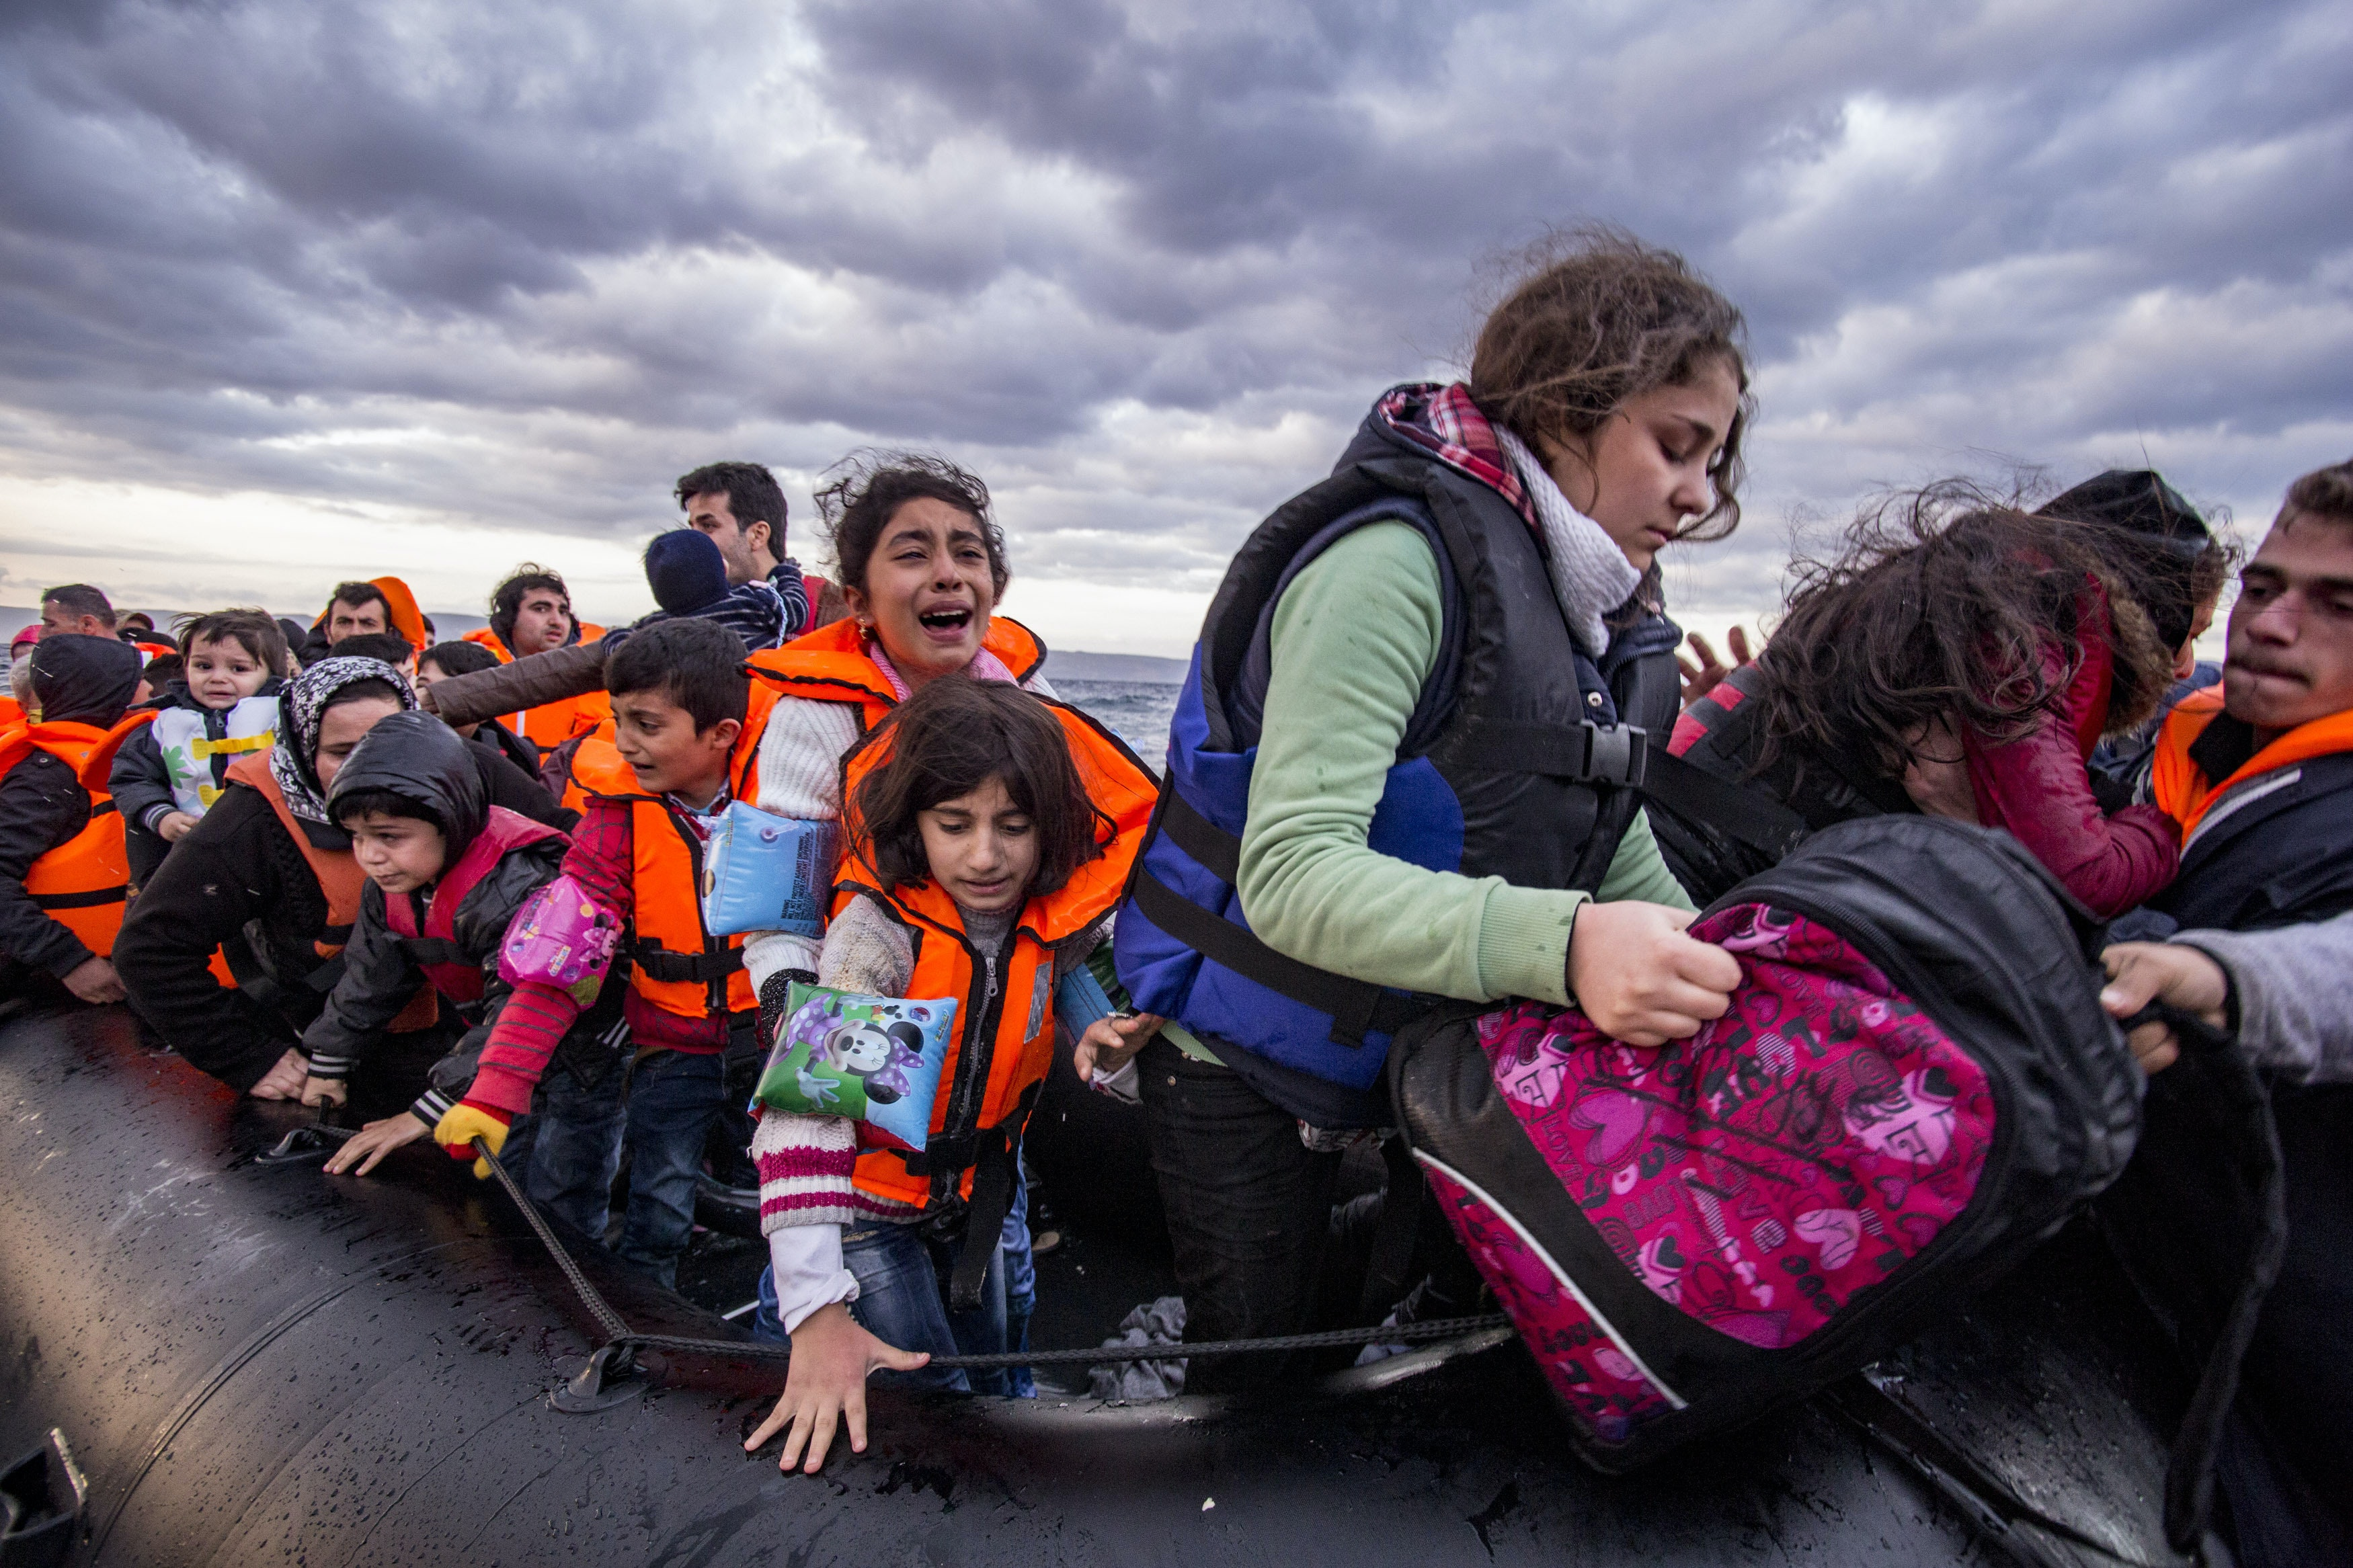 Germany's (not so) grand coalition may cause ripple effects on European refugee policy